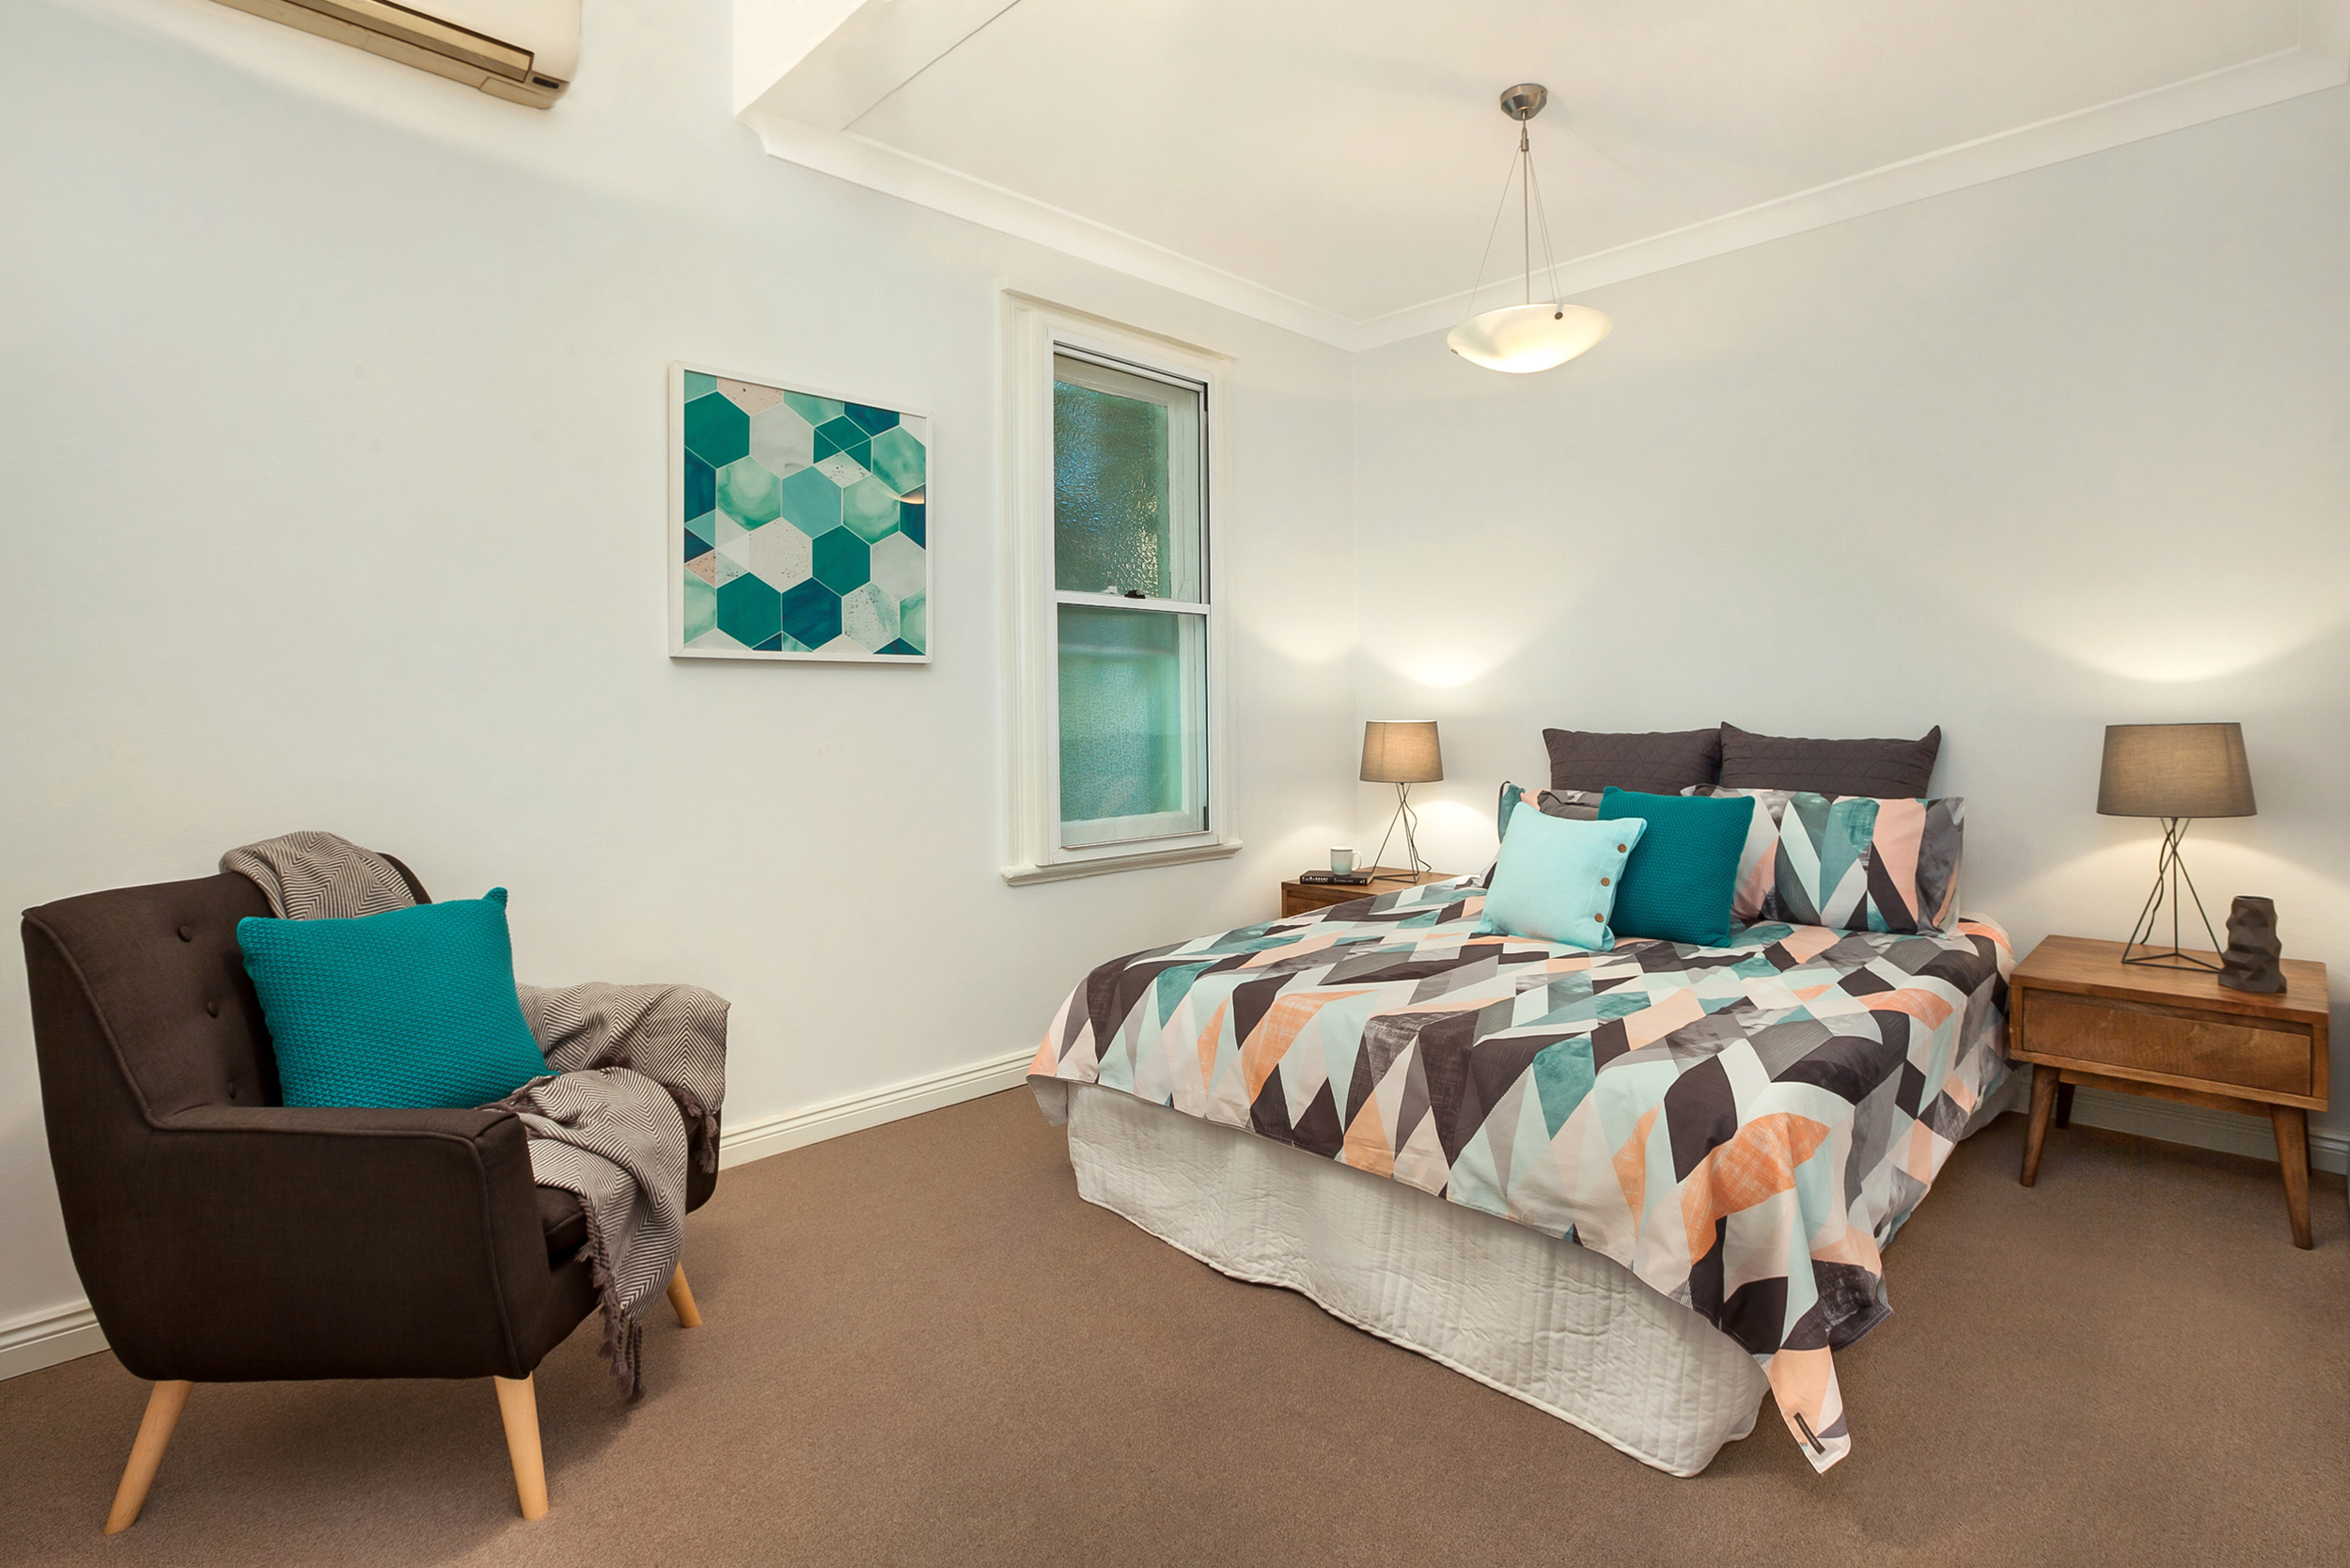 Middleton-St-2-24-Petersham-Bed.jpg